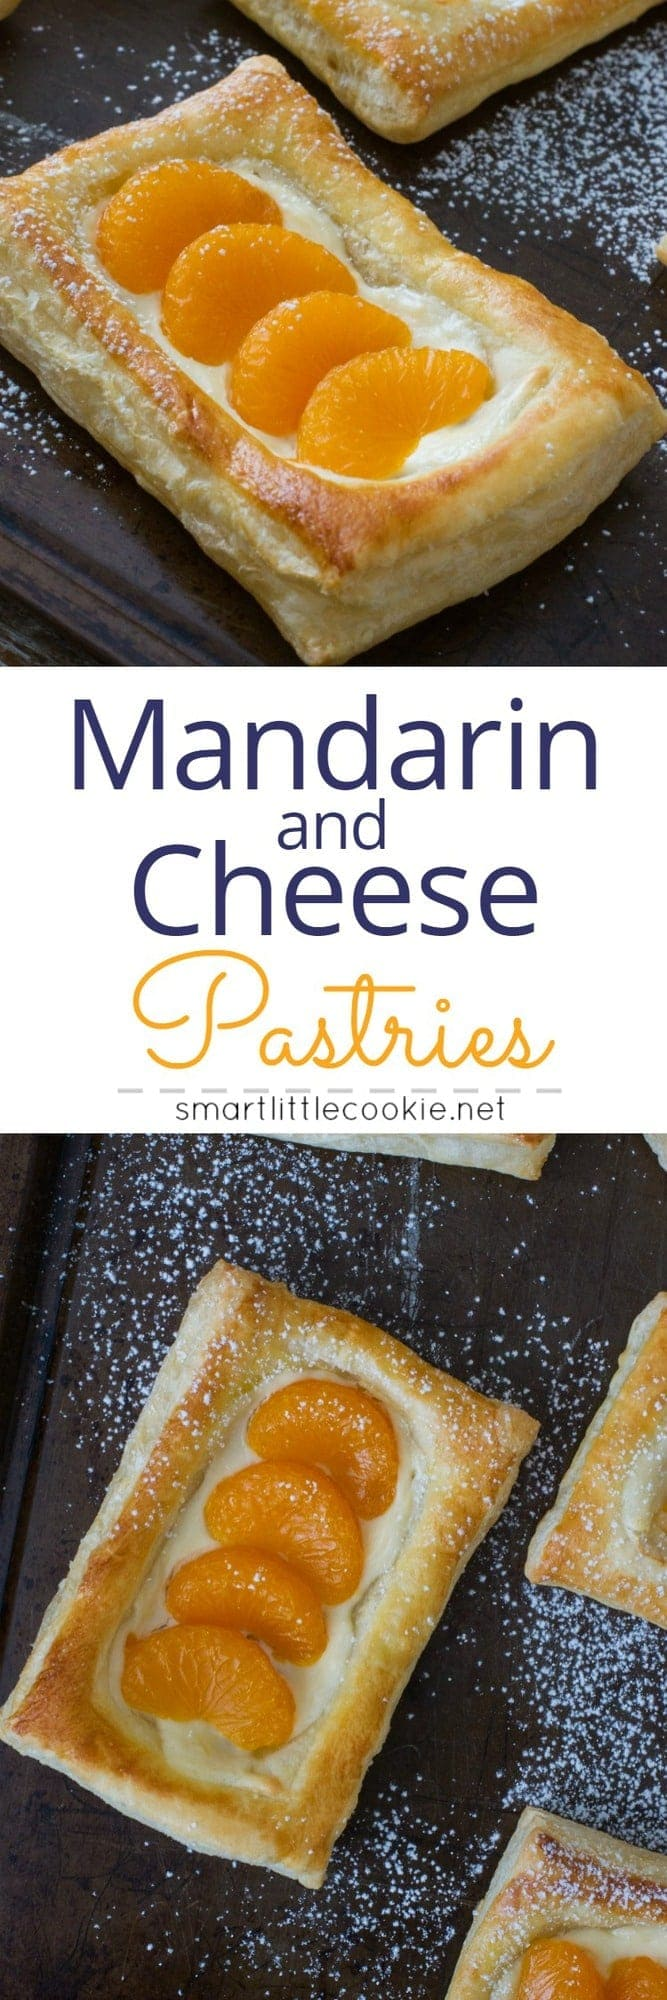 Delicious mandarin fruit and cheese pastries perfect for breakfast or dessert! Made quickly and easily using DOLE® Mandarin Fruit Bowls. #VidaDole #ad #snacks www.mydominicankitchen.com